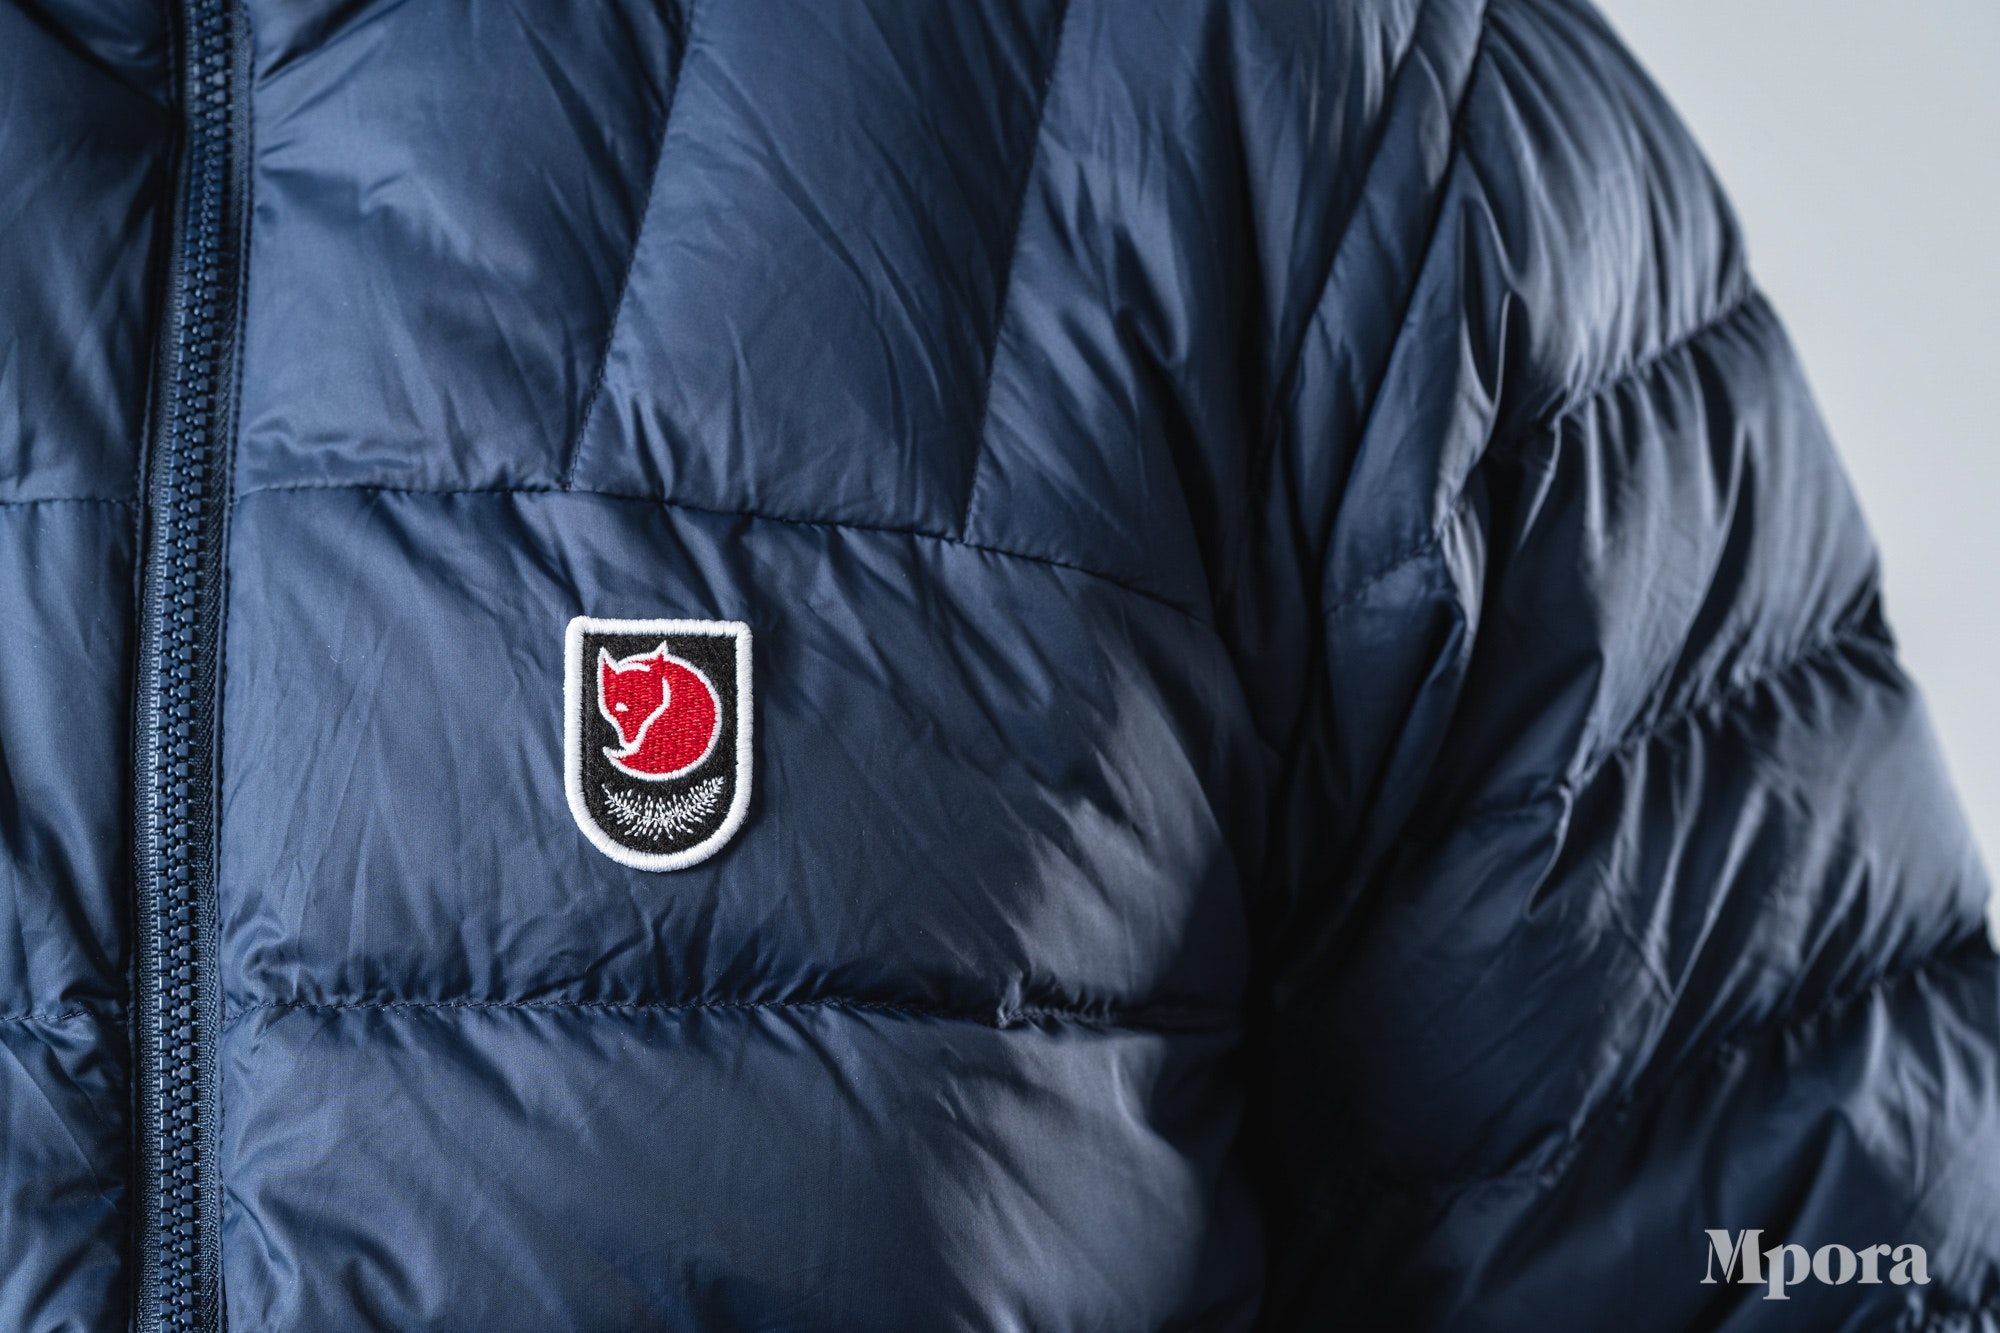 fjallraven-expedition-pack-jacket-review